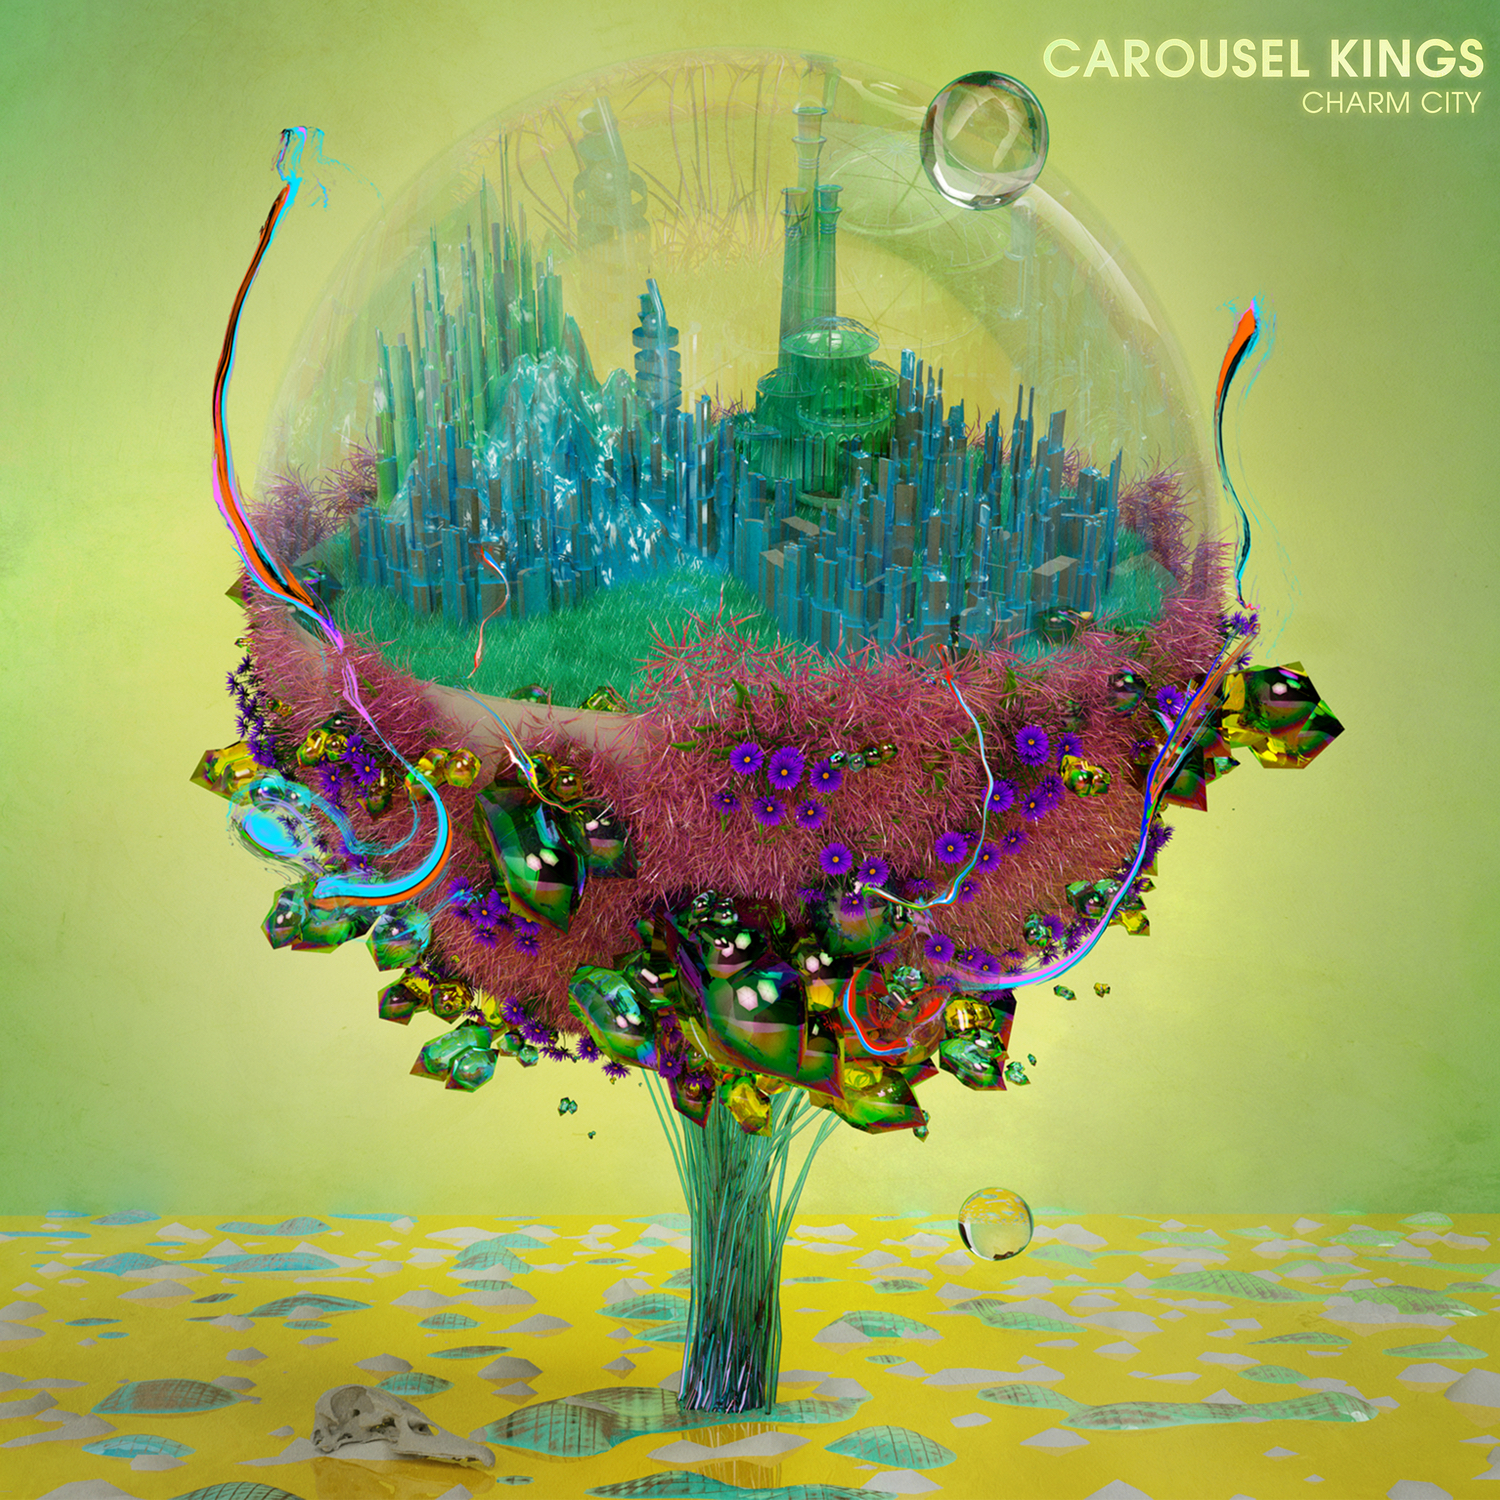 Carousel Kings - Charm City (2017)